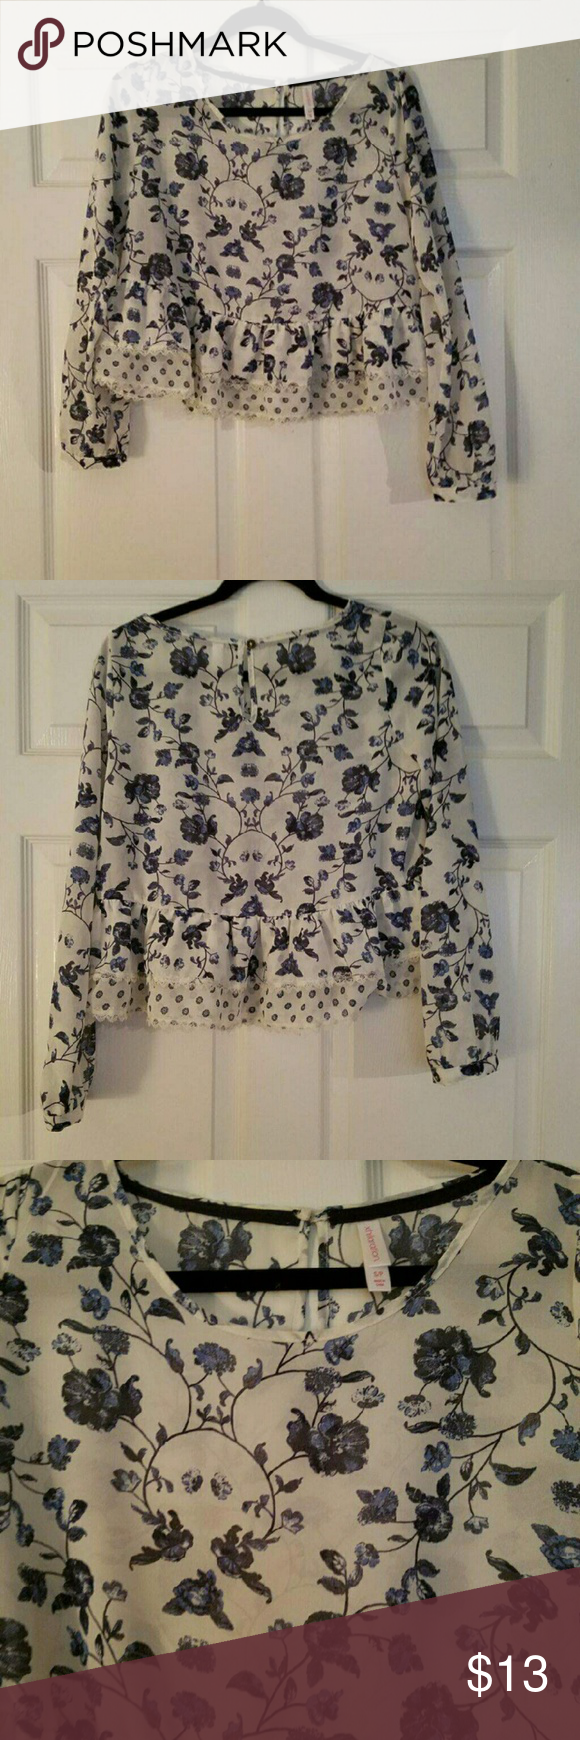 White and blue floral top White and blue floral top. Has a peplum ruffle detail. Super cute. Hate to see go, but I never wear it. No trades. Tops Blouses